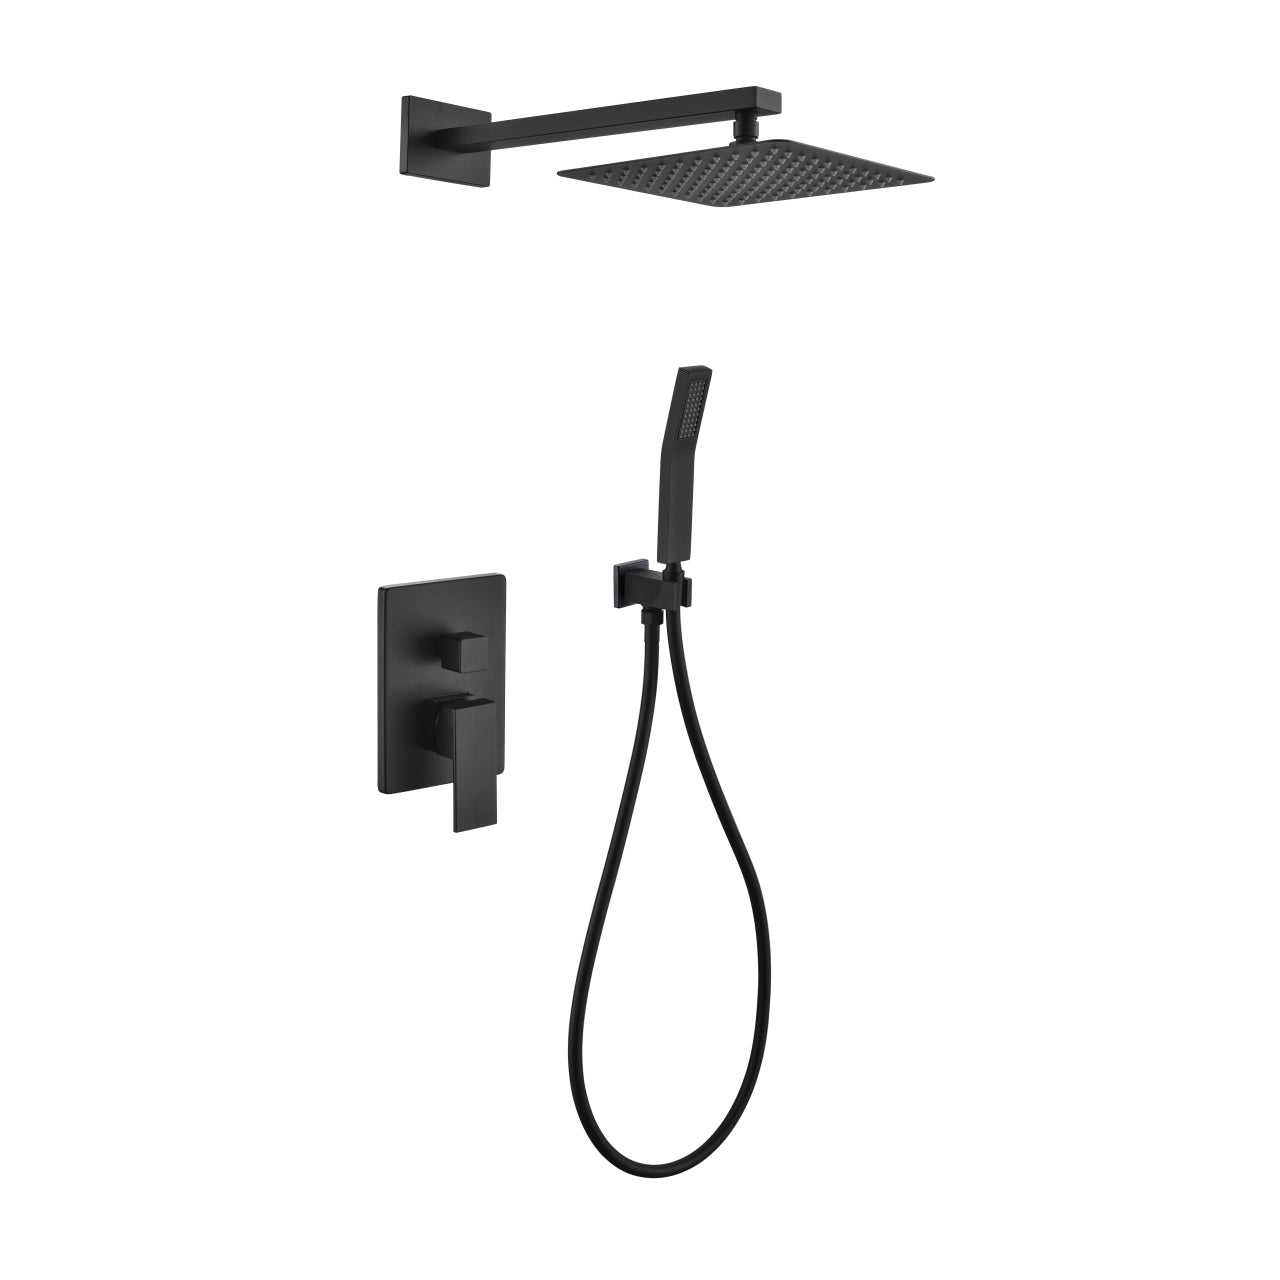 "Aqua Piazza Matte Black Shower Set with 8"" Square Rain Shower and Handheld"